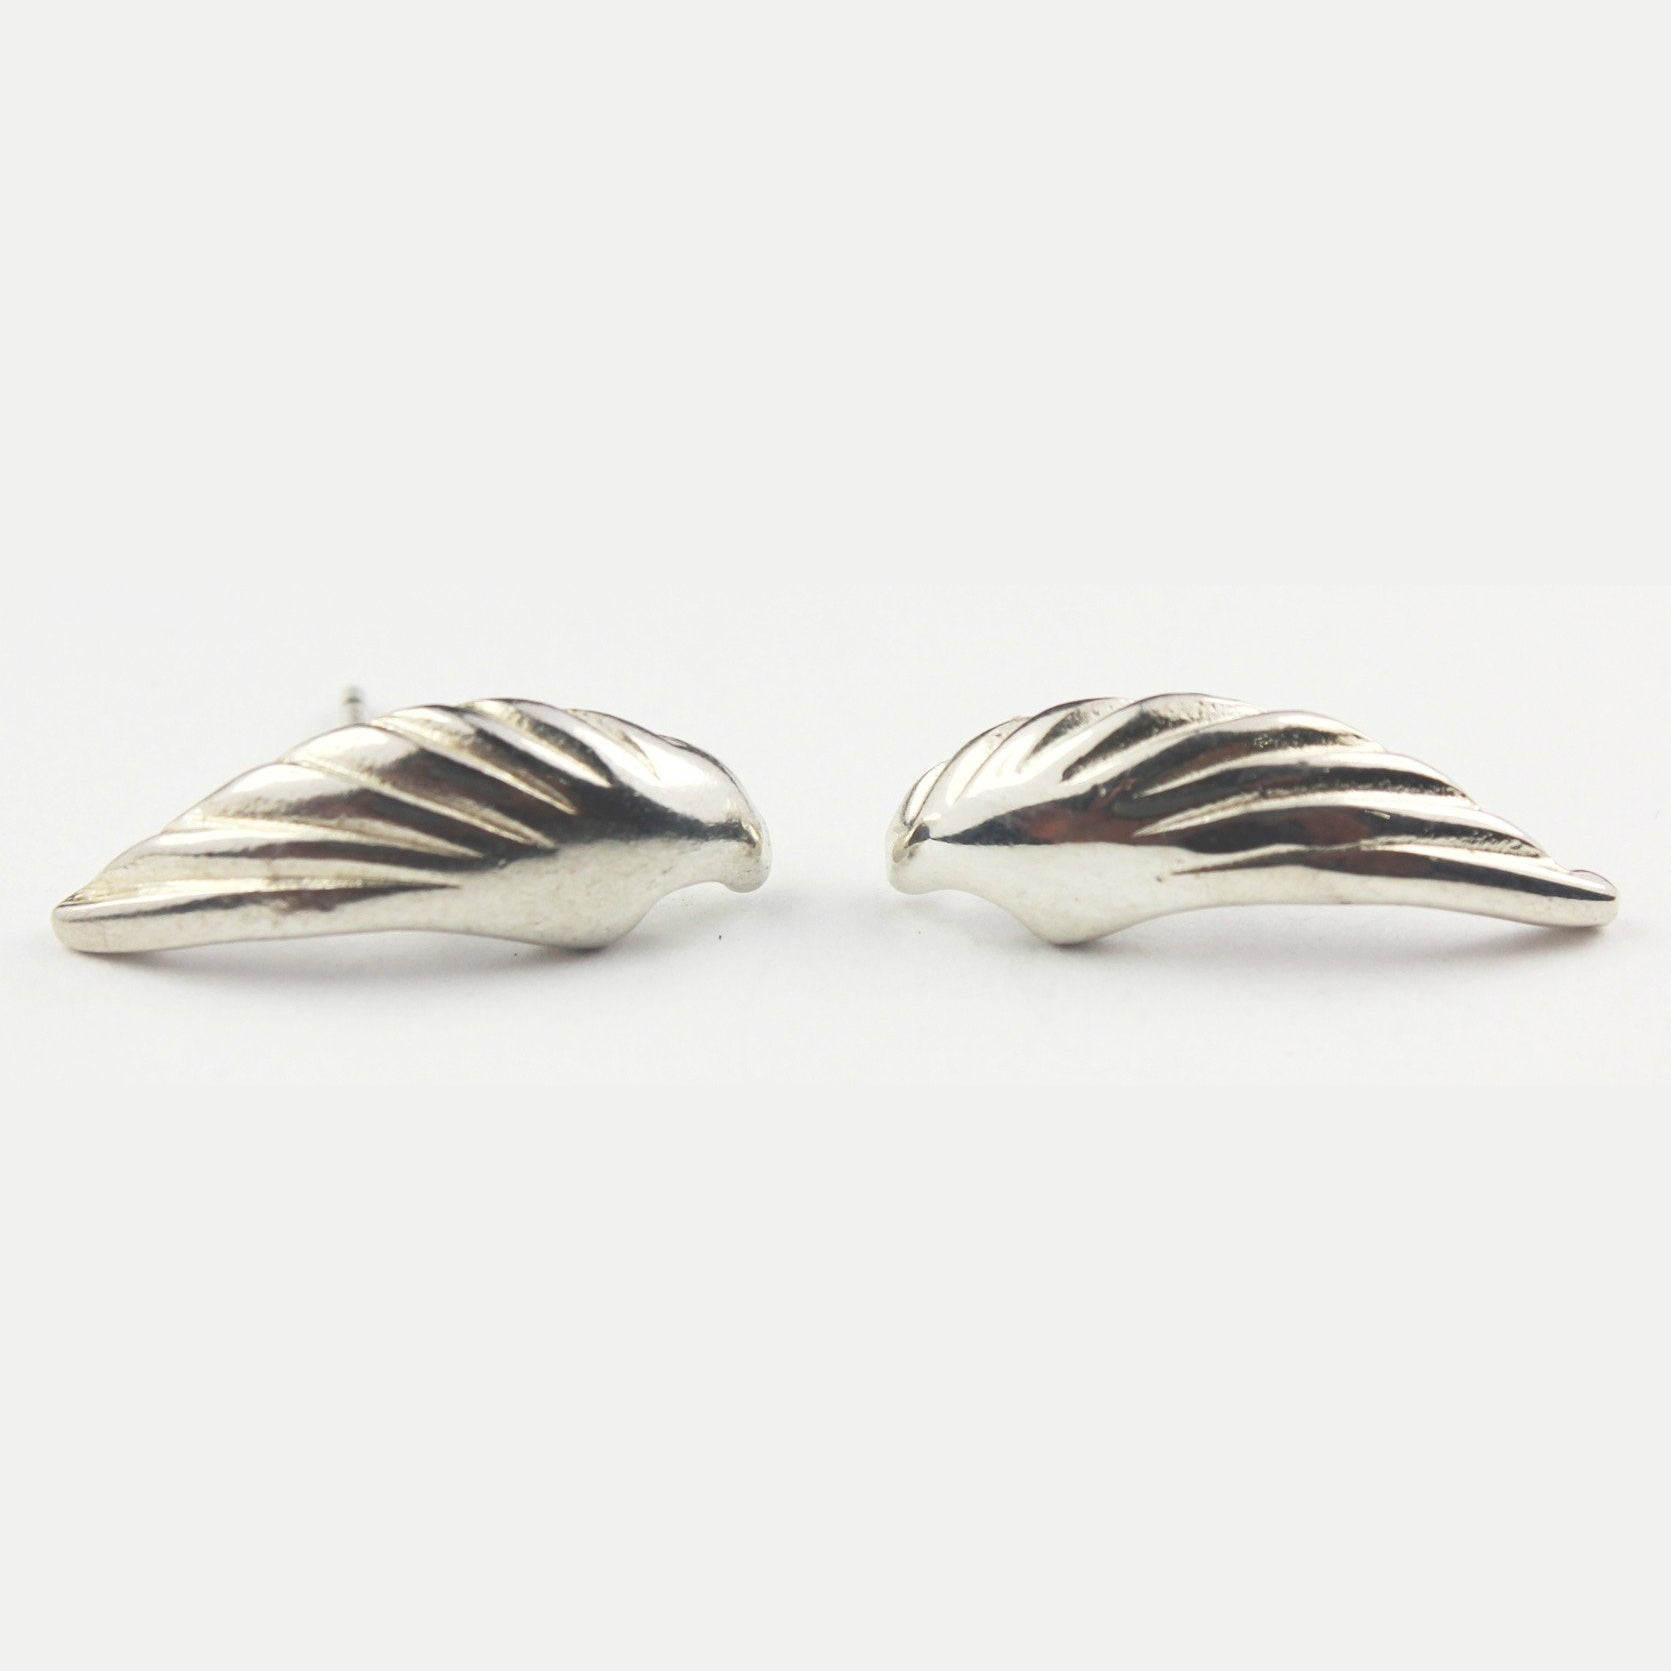 Angel Wing Stud Earrings, made from Sterling Silver and filled with love they make the perfect gift!